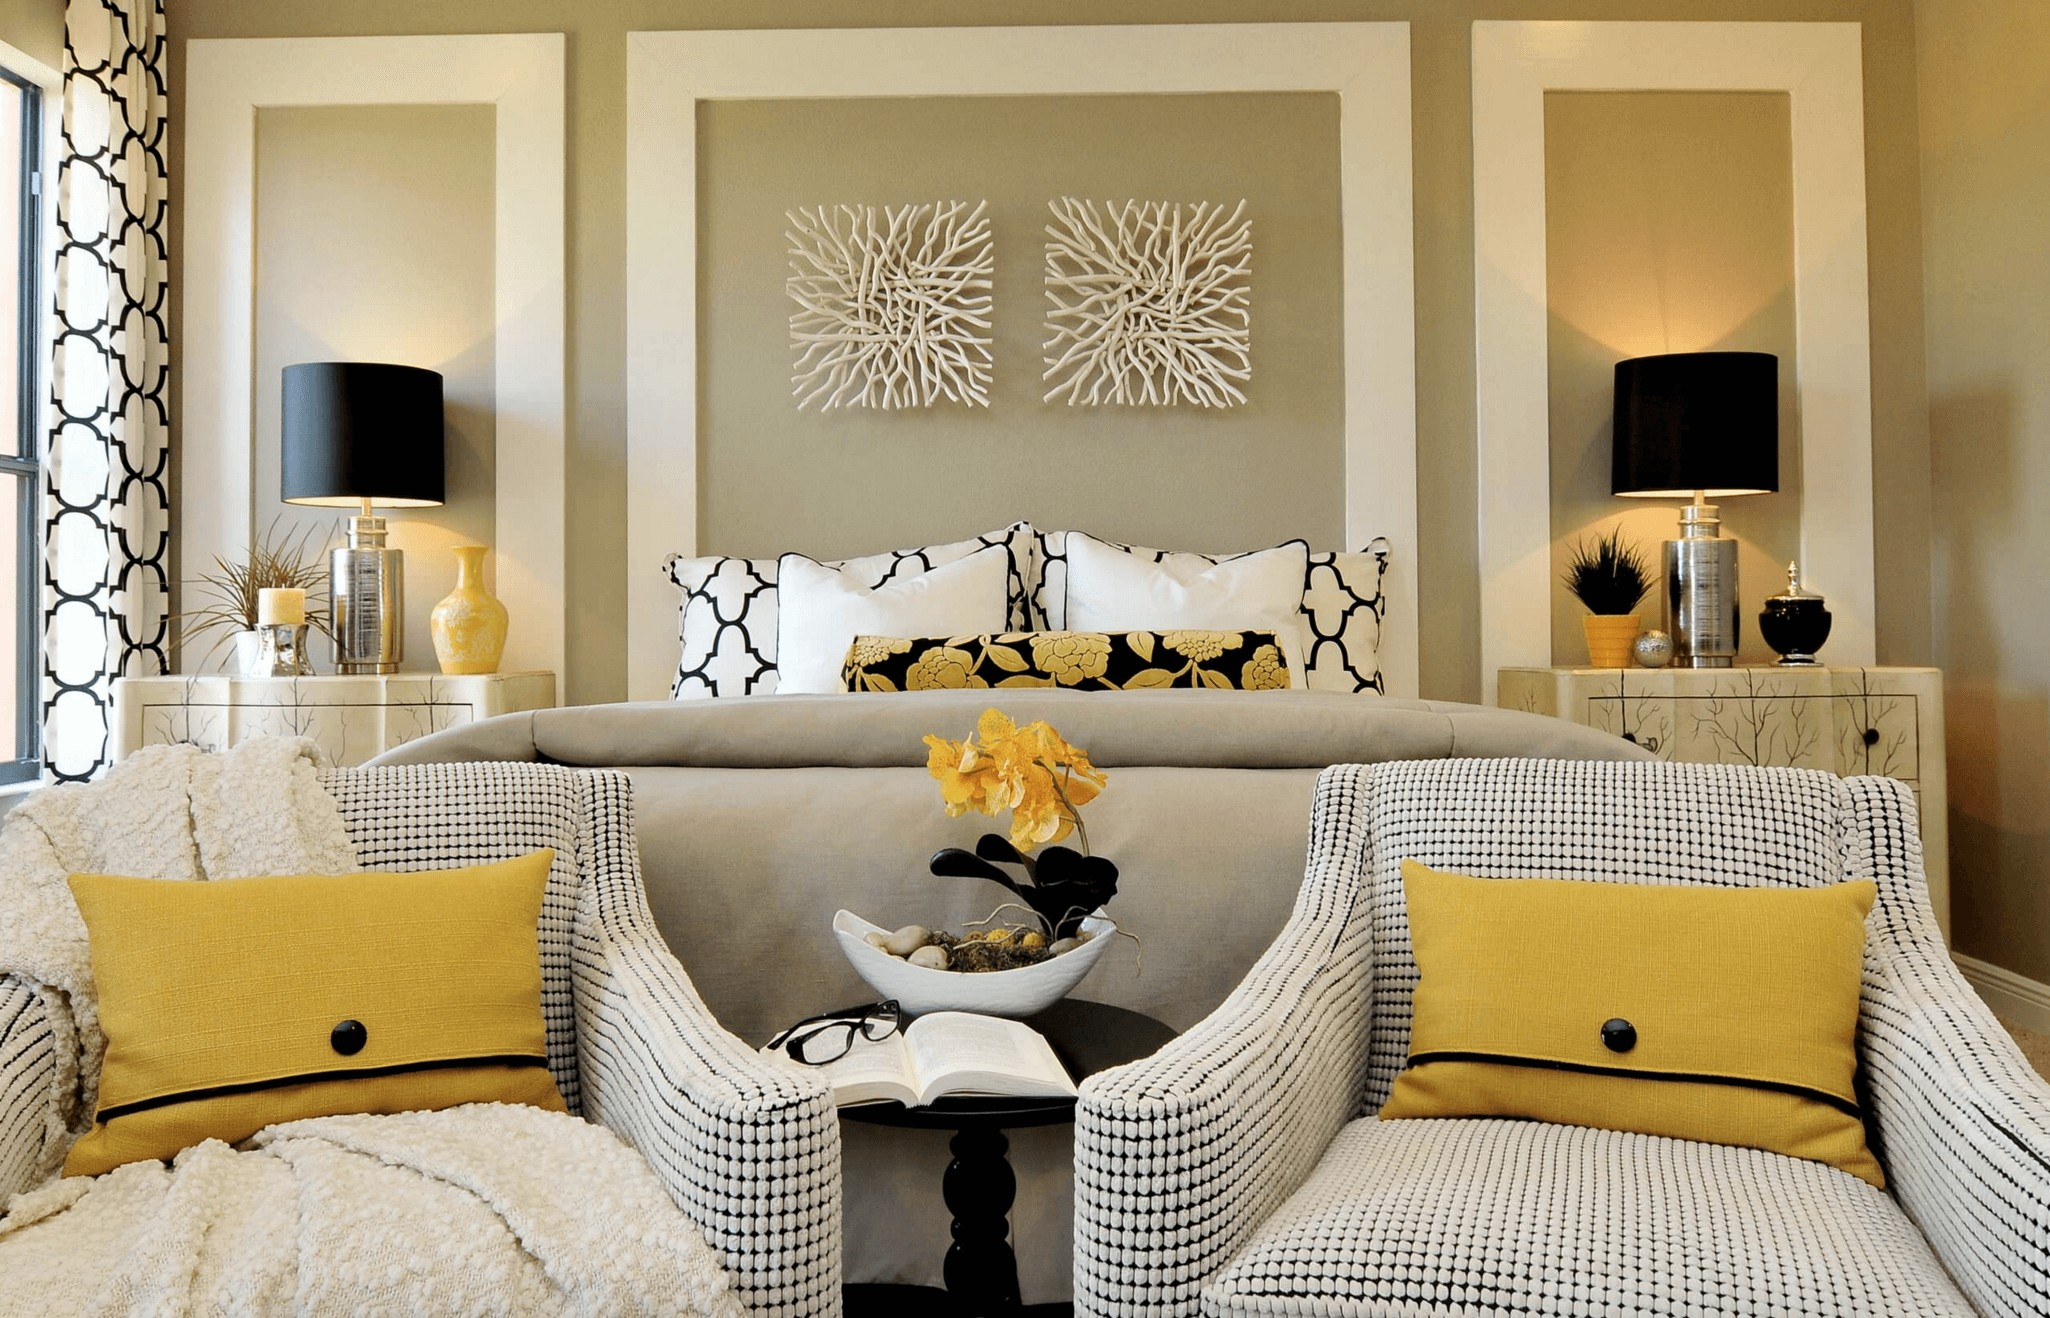 Feature Wall Ideas to Showcase Your Style Freshome